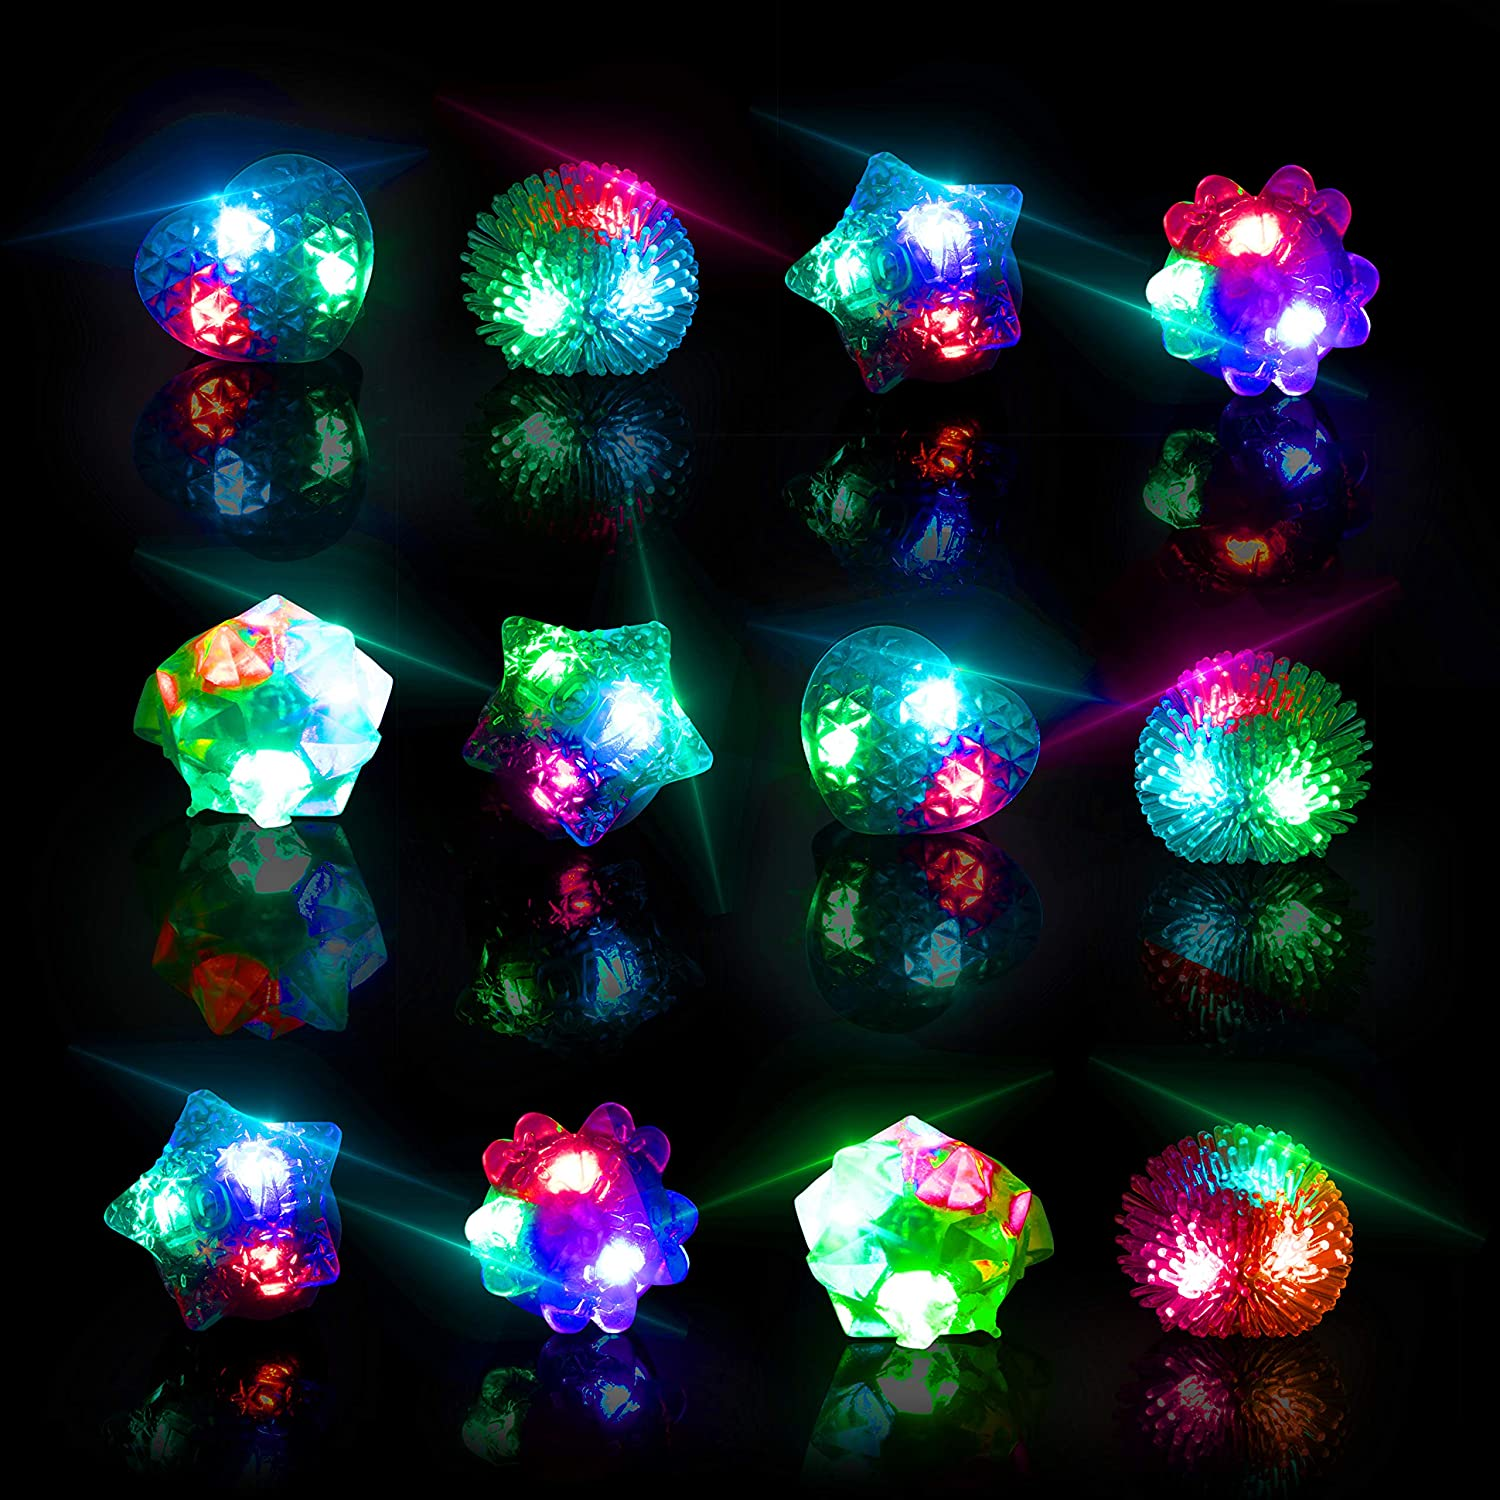 Glow Rings LED Party Favors for Kids – Light Up Rings Glow in The Dark Party Supplies LED Finger Lights Stocking Stuffers or Rave Accessories 36pk